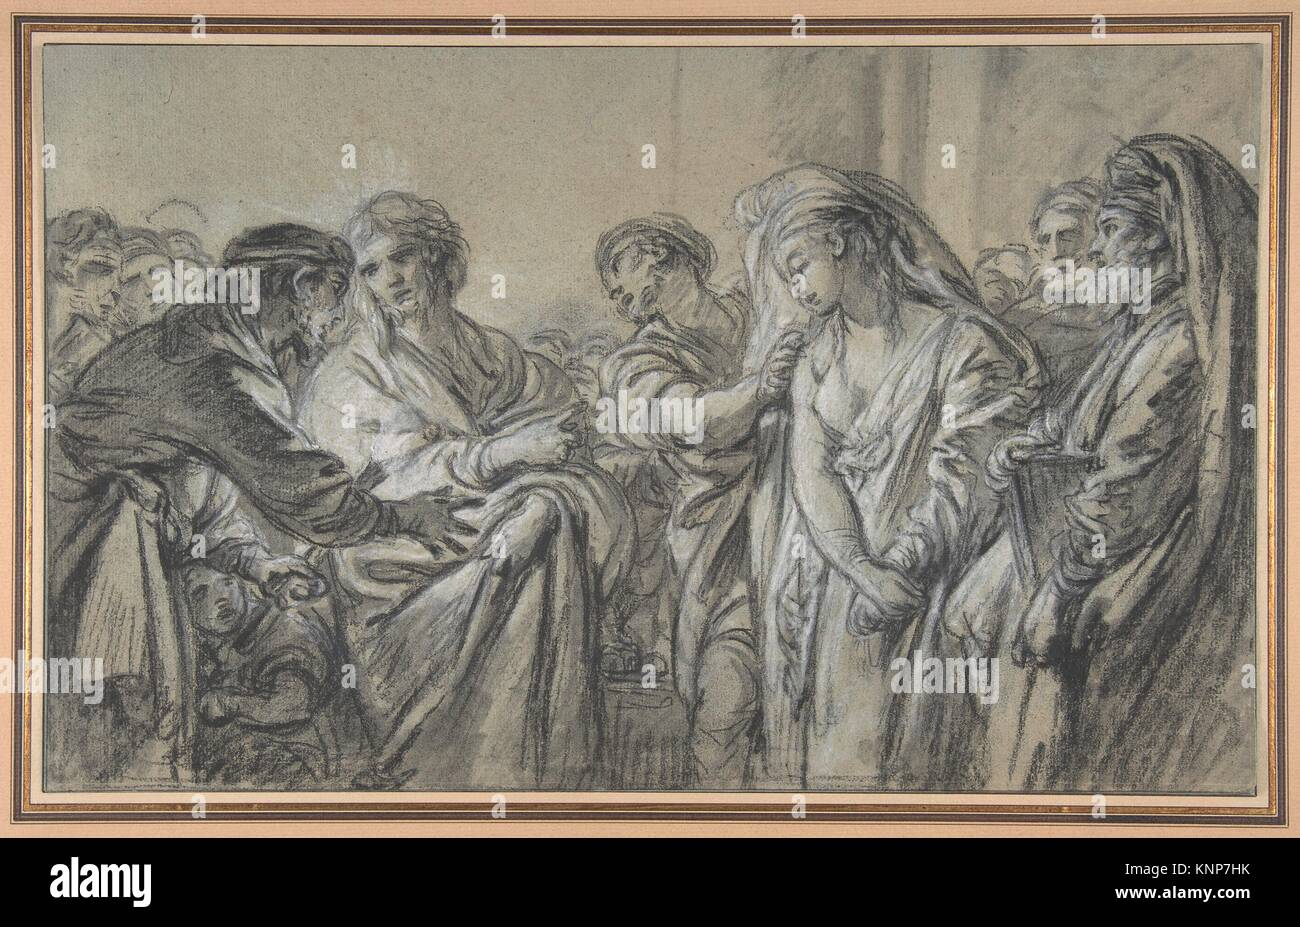 Christ and the Woman Taken in Adultery. Artist: François Boucher (French, Paris 1703-1770 Paris); Medium: Black - Stock Image